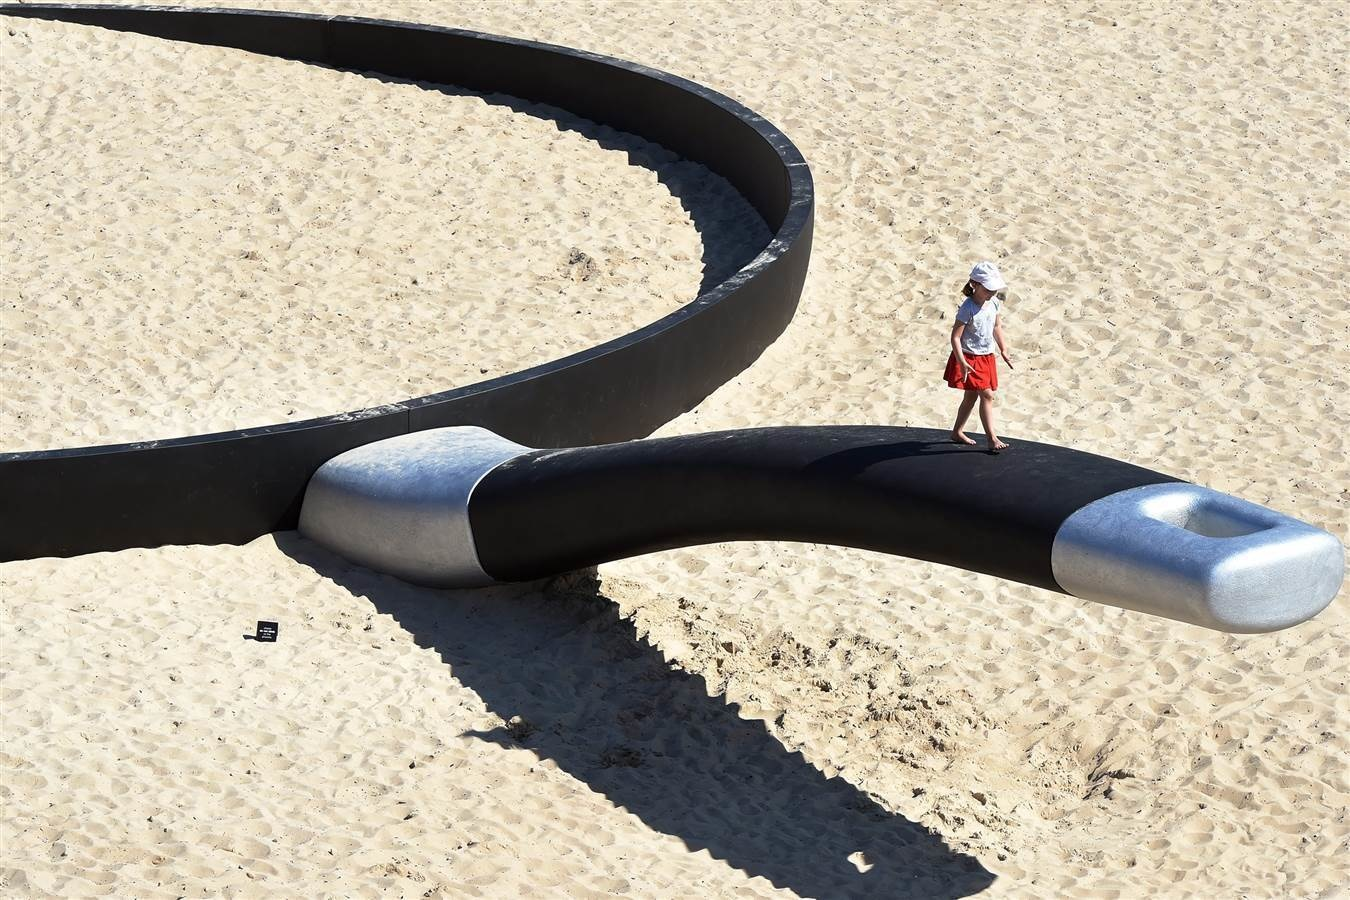 A Frying pan beach sculpture in Sydney, Australia